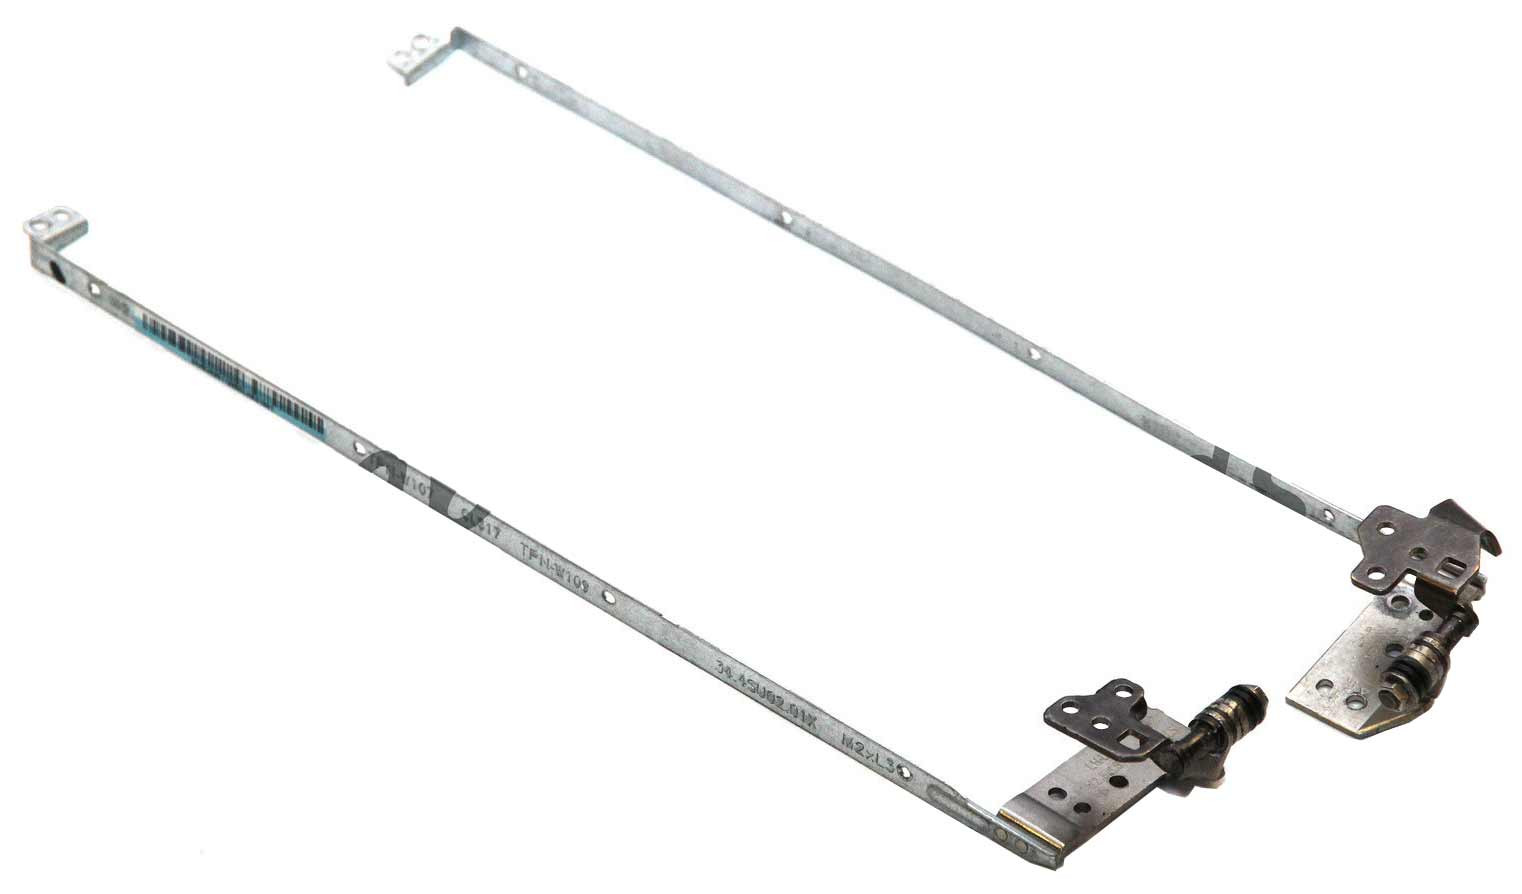 FOR HP Pavilion DV7 7000 Screen axis hinges-in Laptop Bags